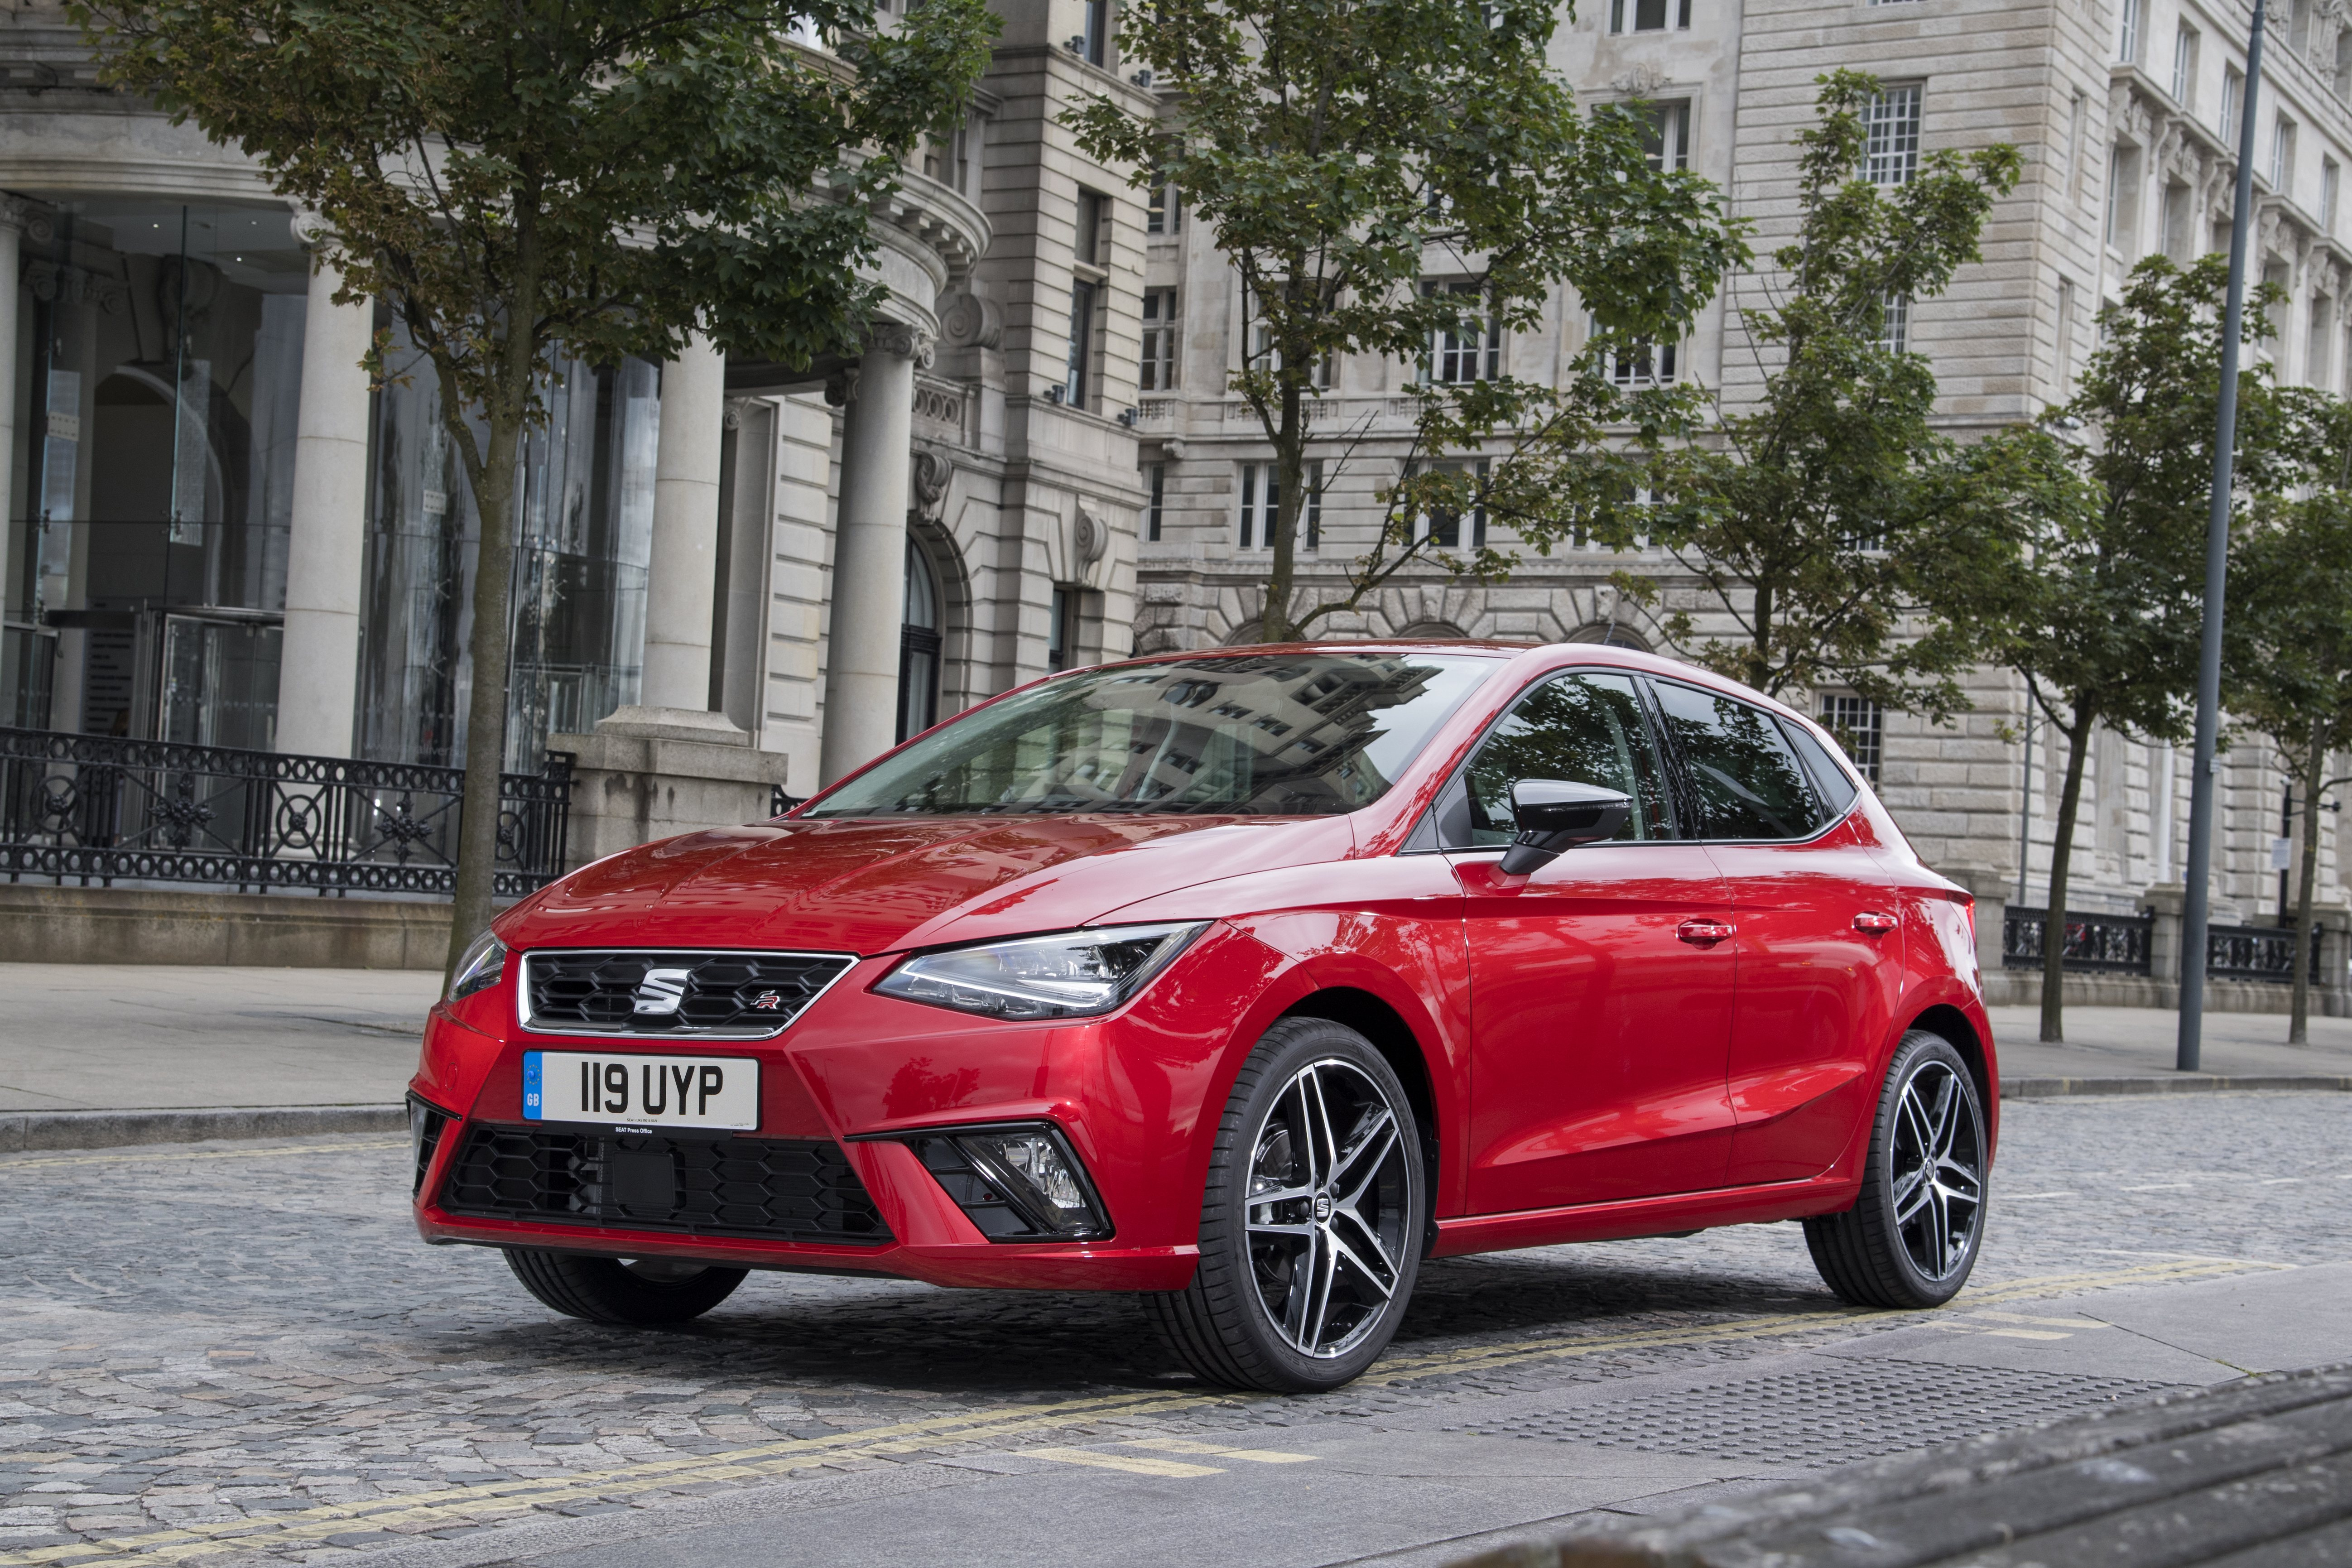 SEAT Ibiza FR parked on the street